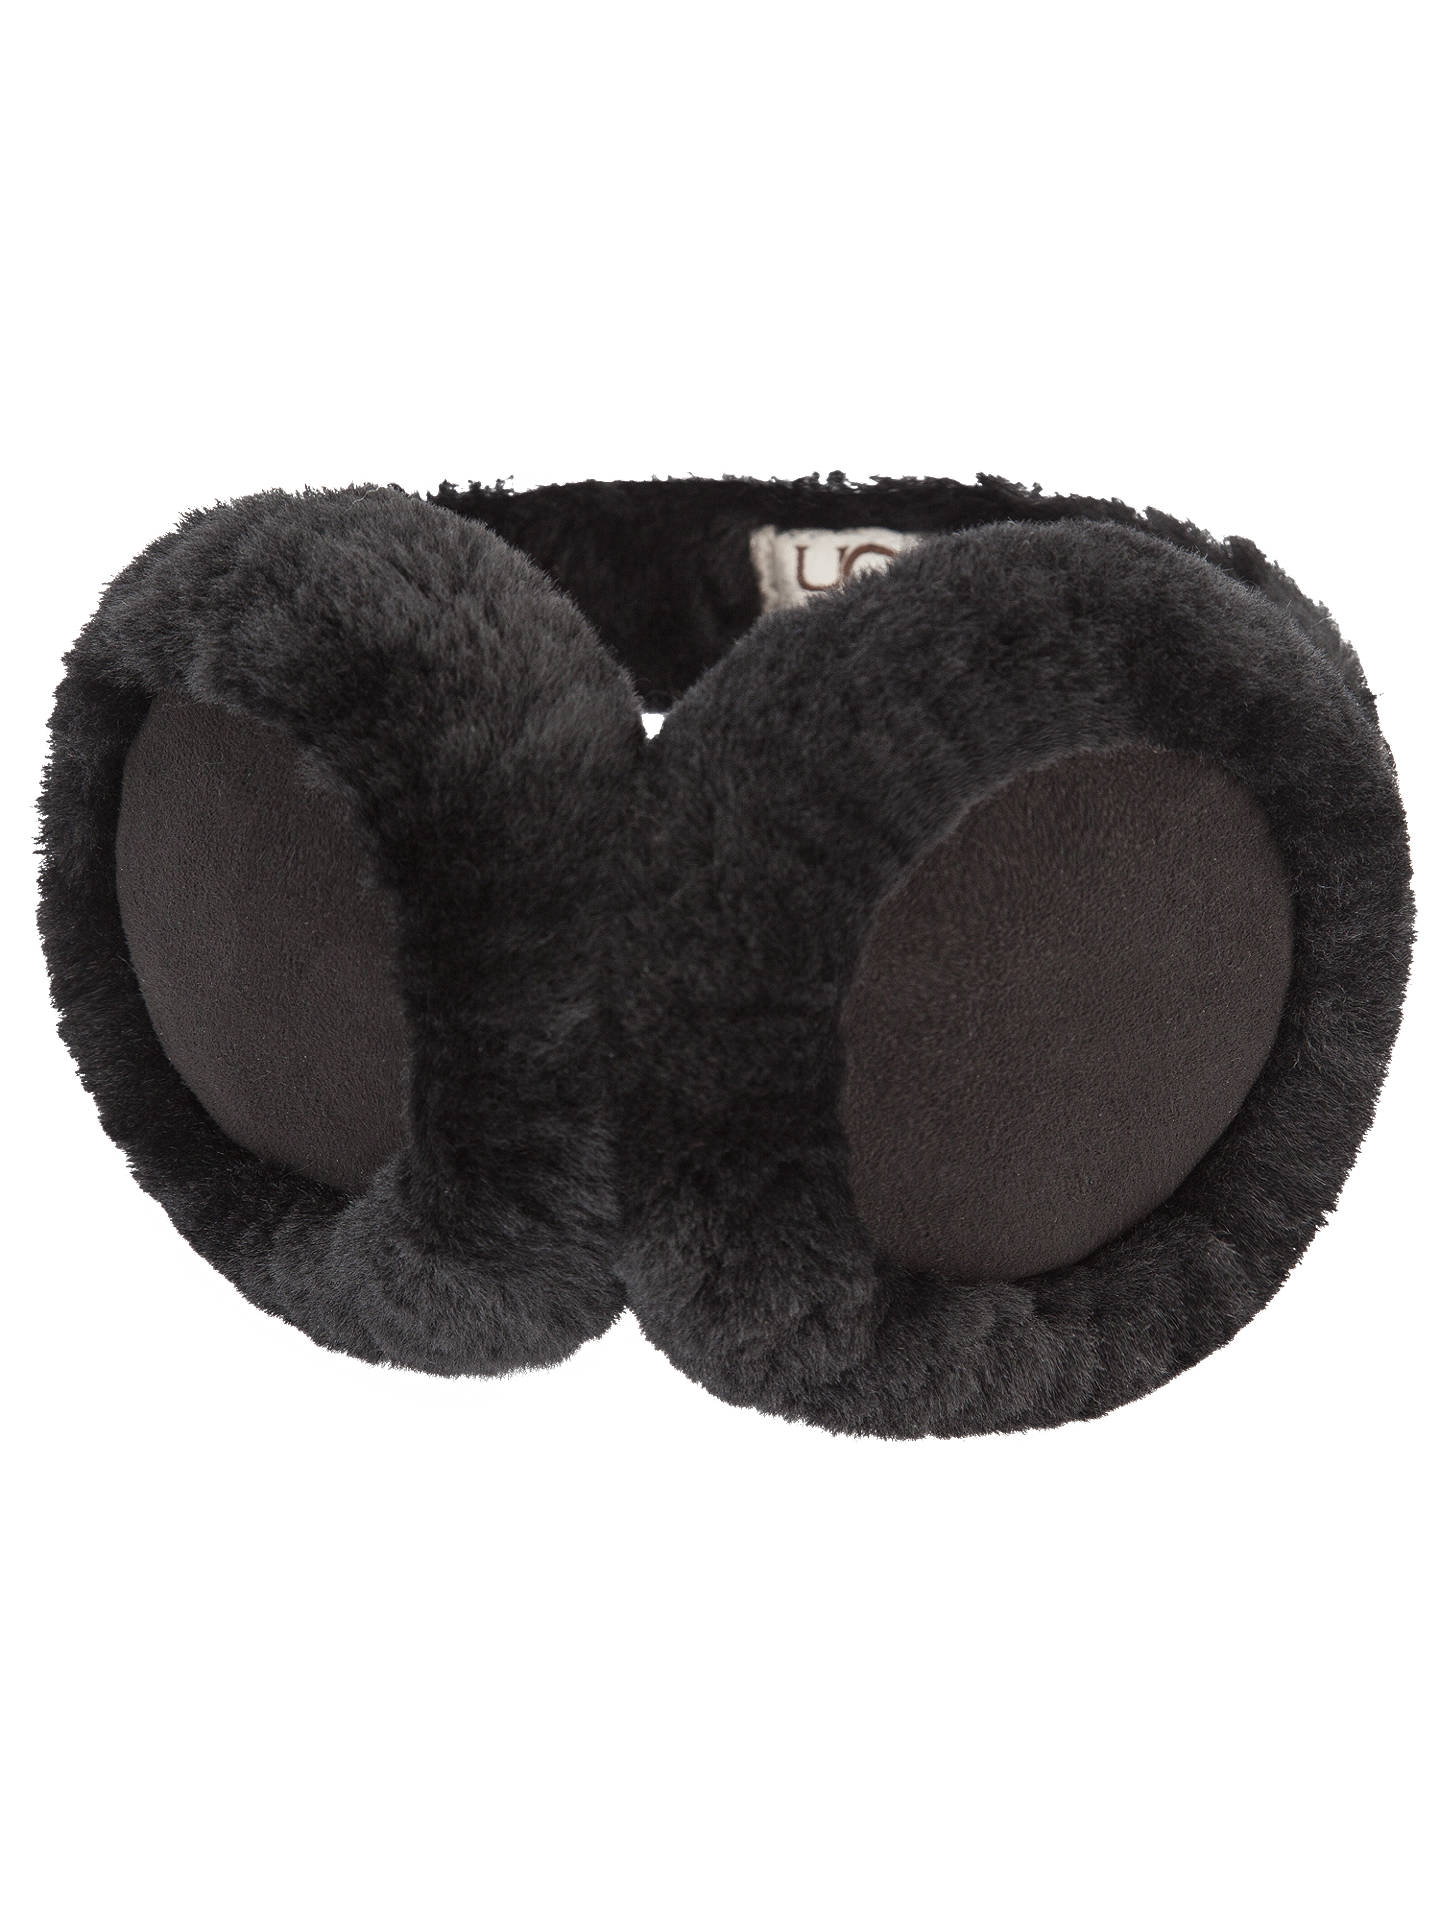 926cb27c669 UGG Logo Earmuffs, Black at John Lewis & Partners